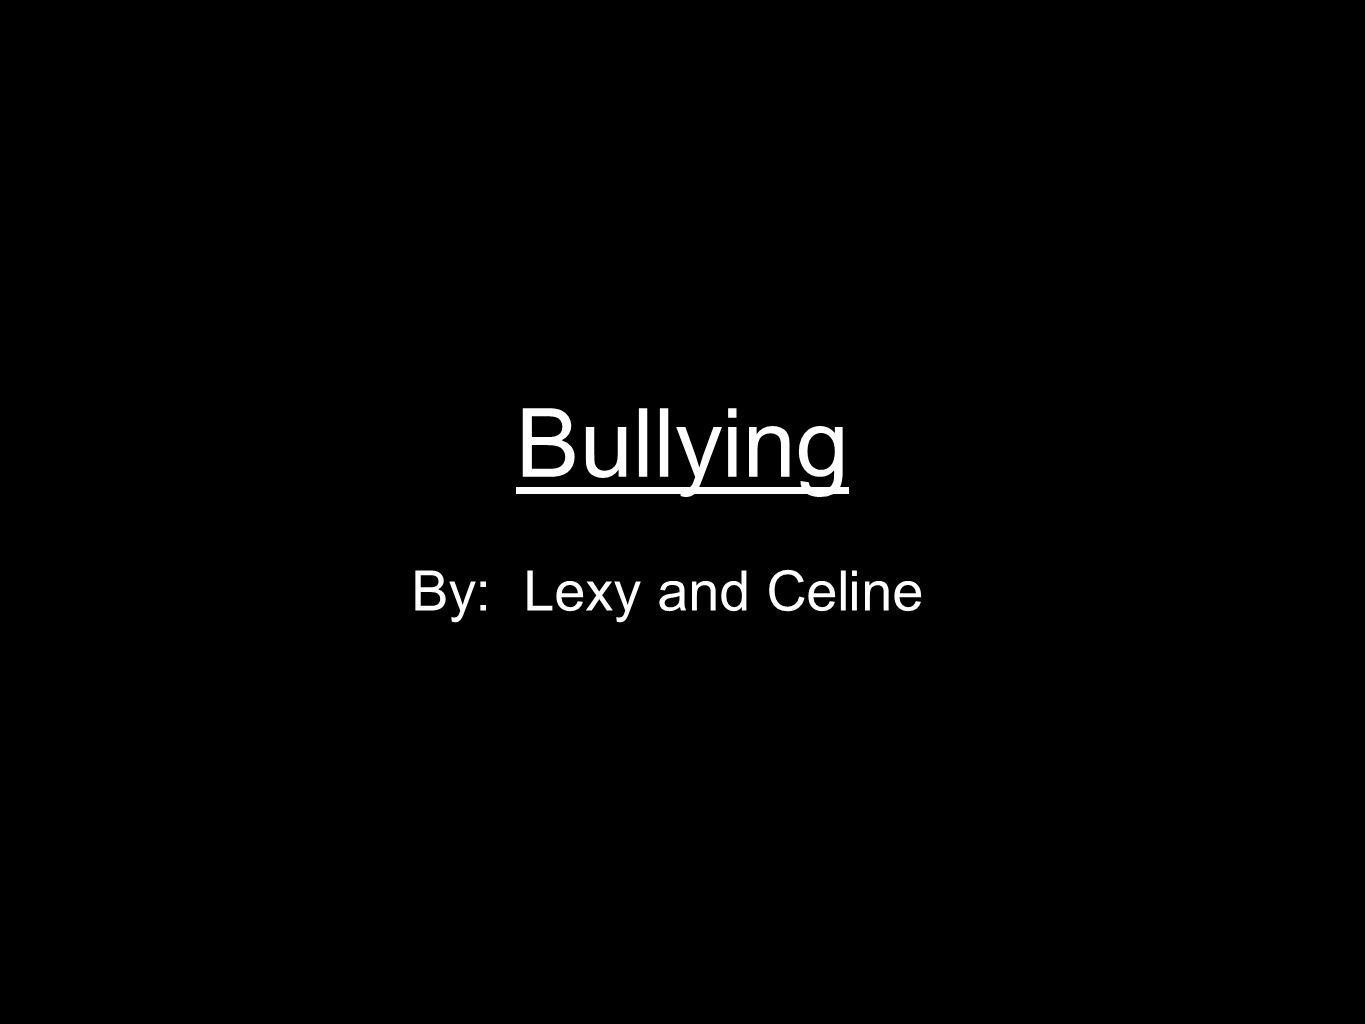 Bullying By: Lexy and Celine